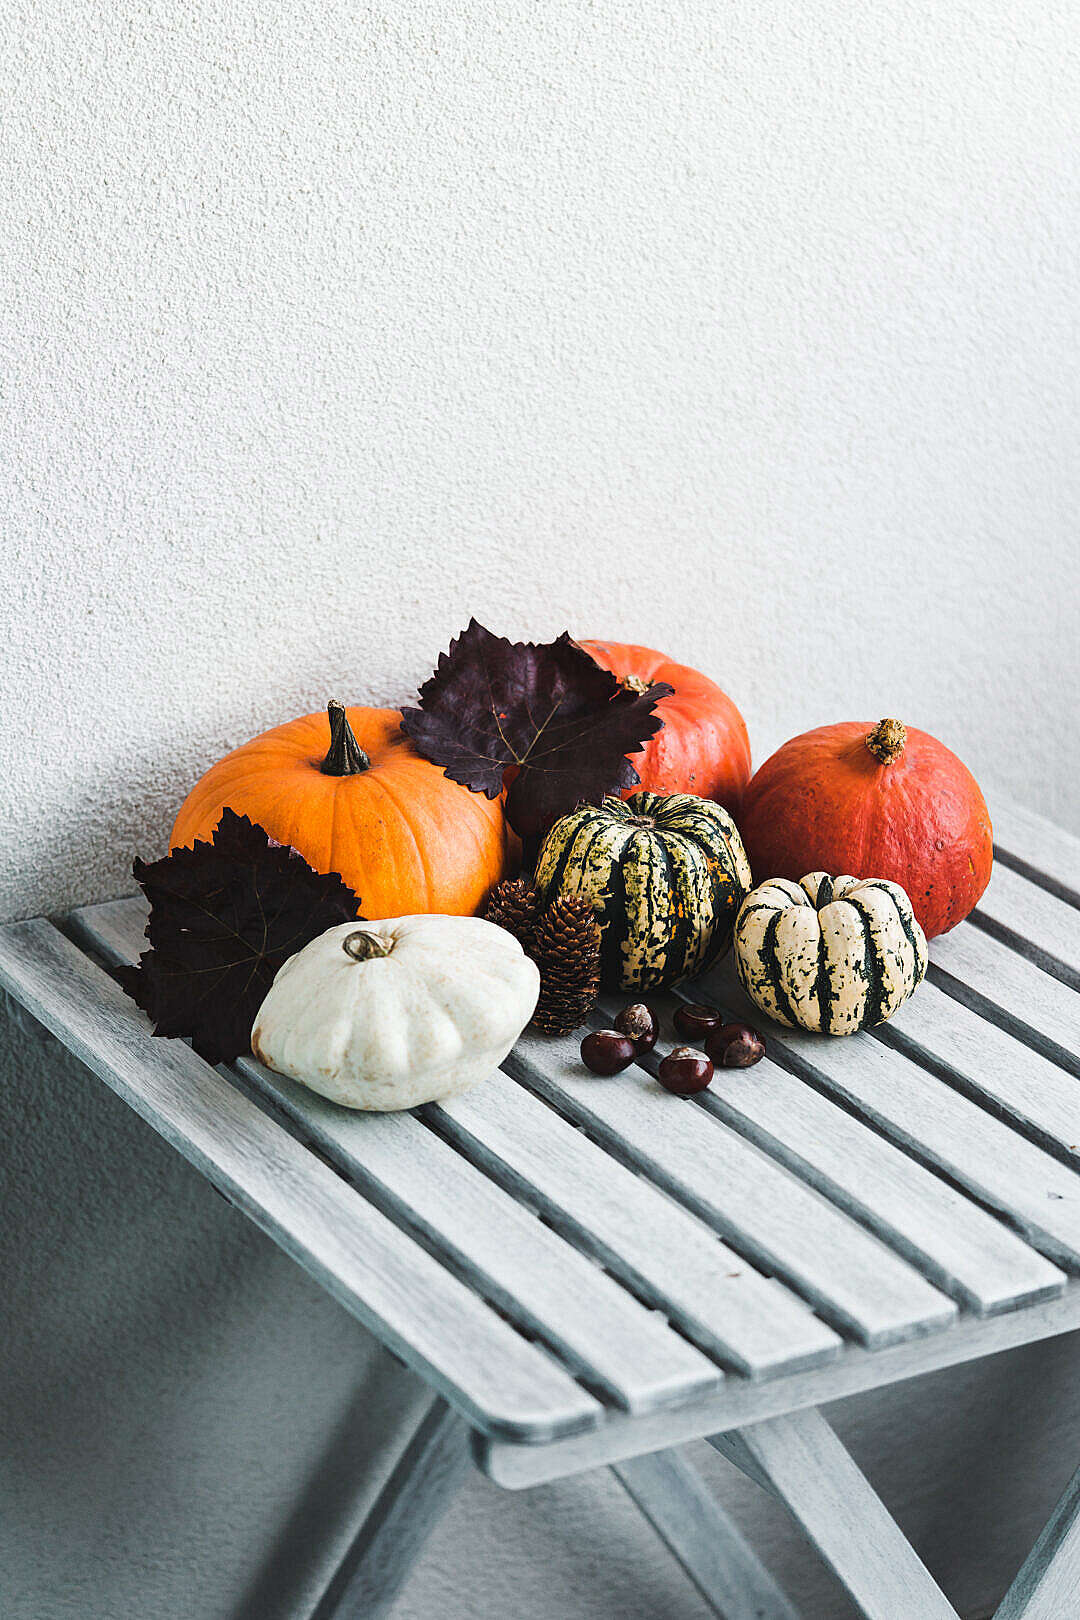 Download Pumpkins in Different Shapes as Fall Decorations FREE Stock Photo